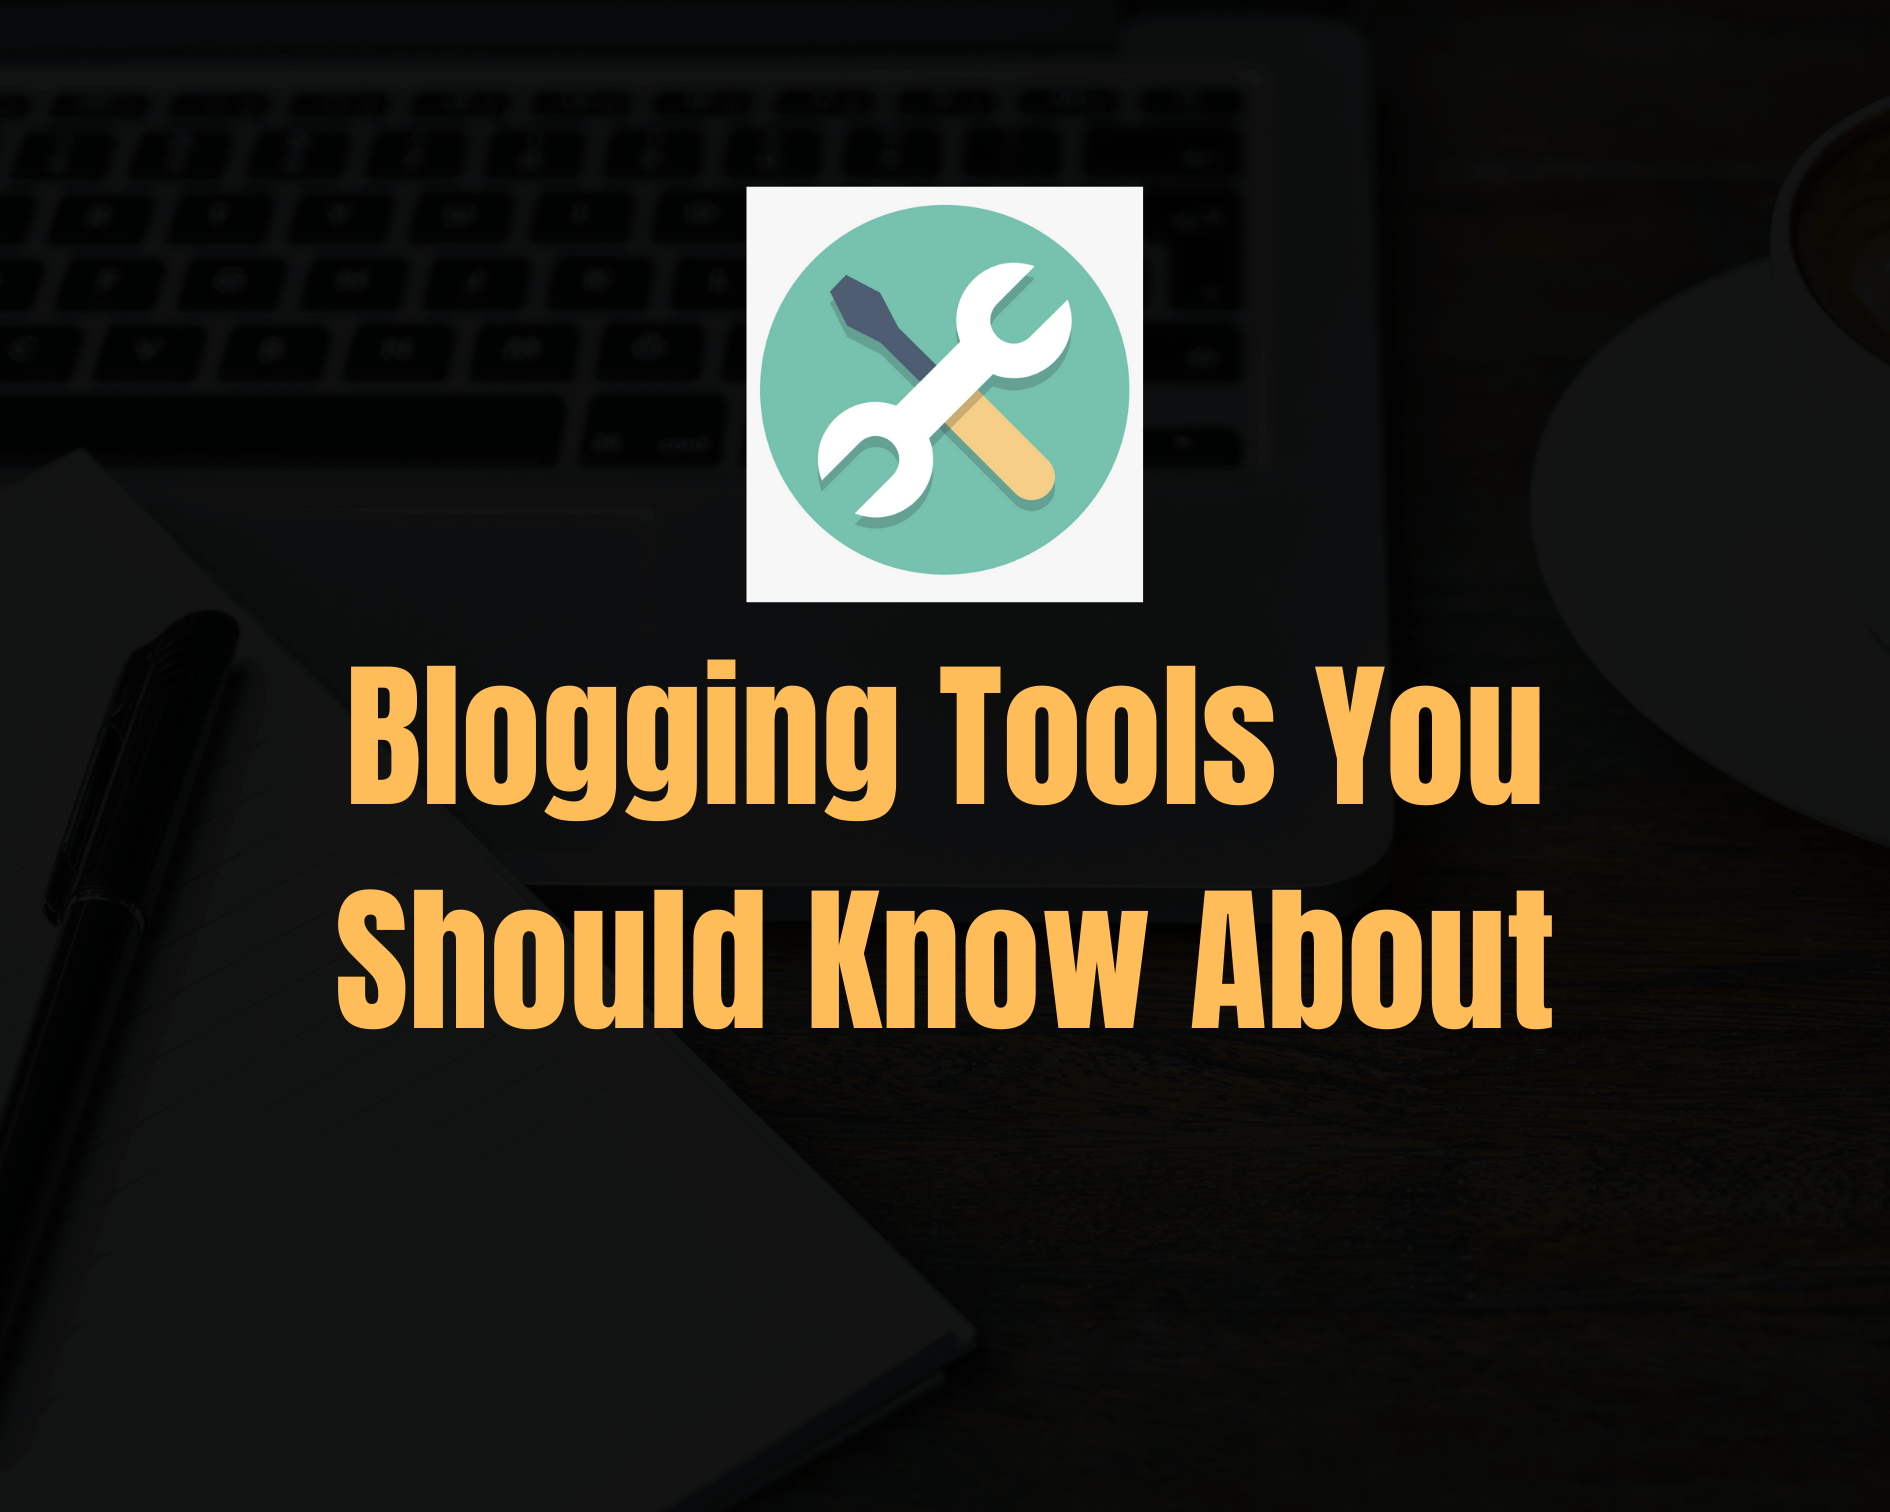 21 Best Blogging Tools for Beginners in 2021